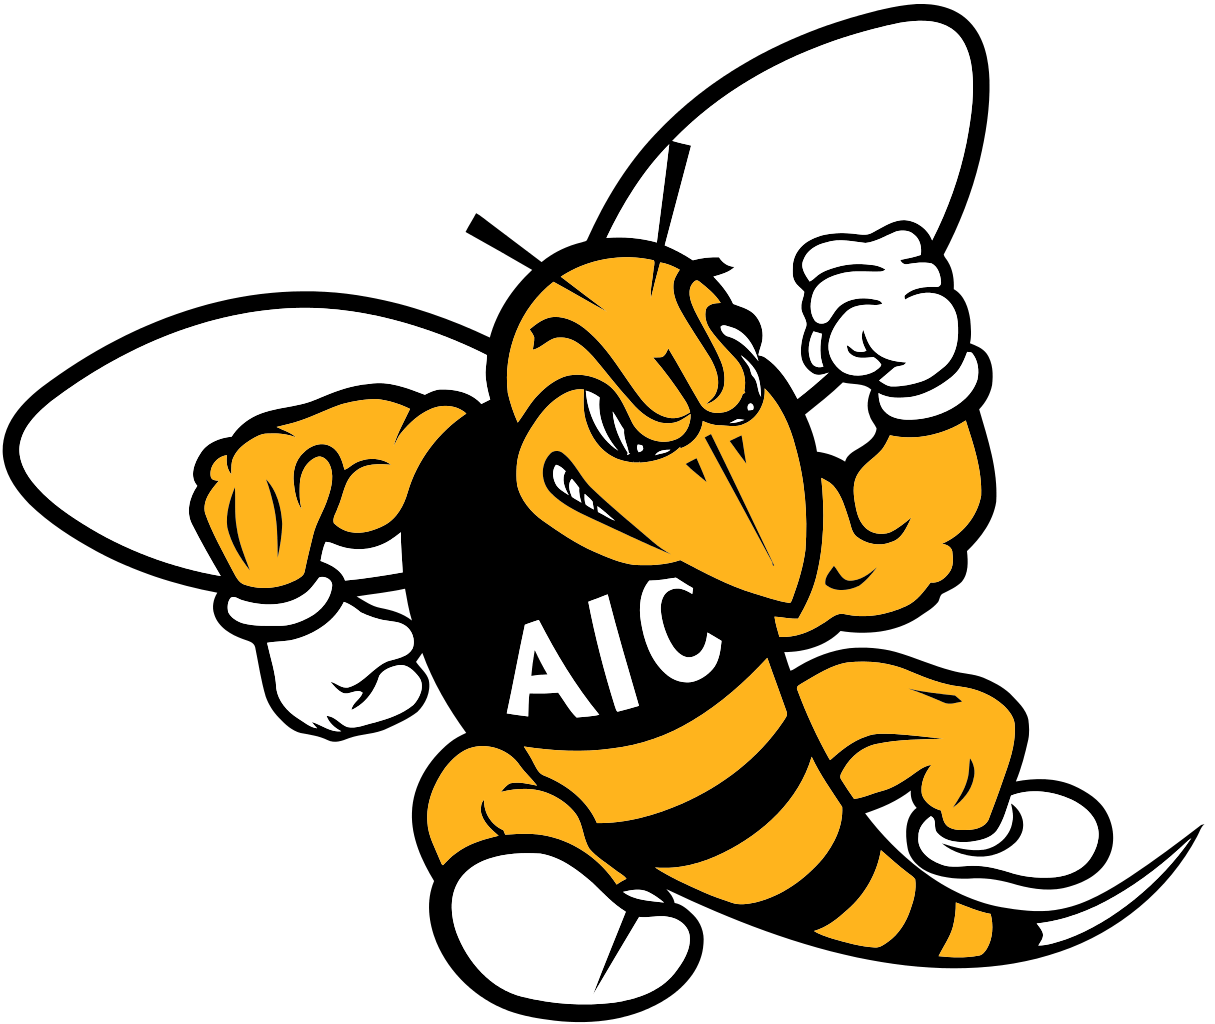 Yellow jacket clipart springfield pictures on Cliparts Pub 2020!